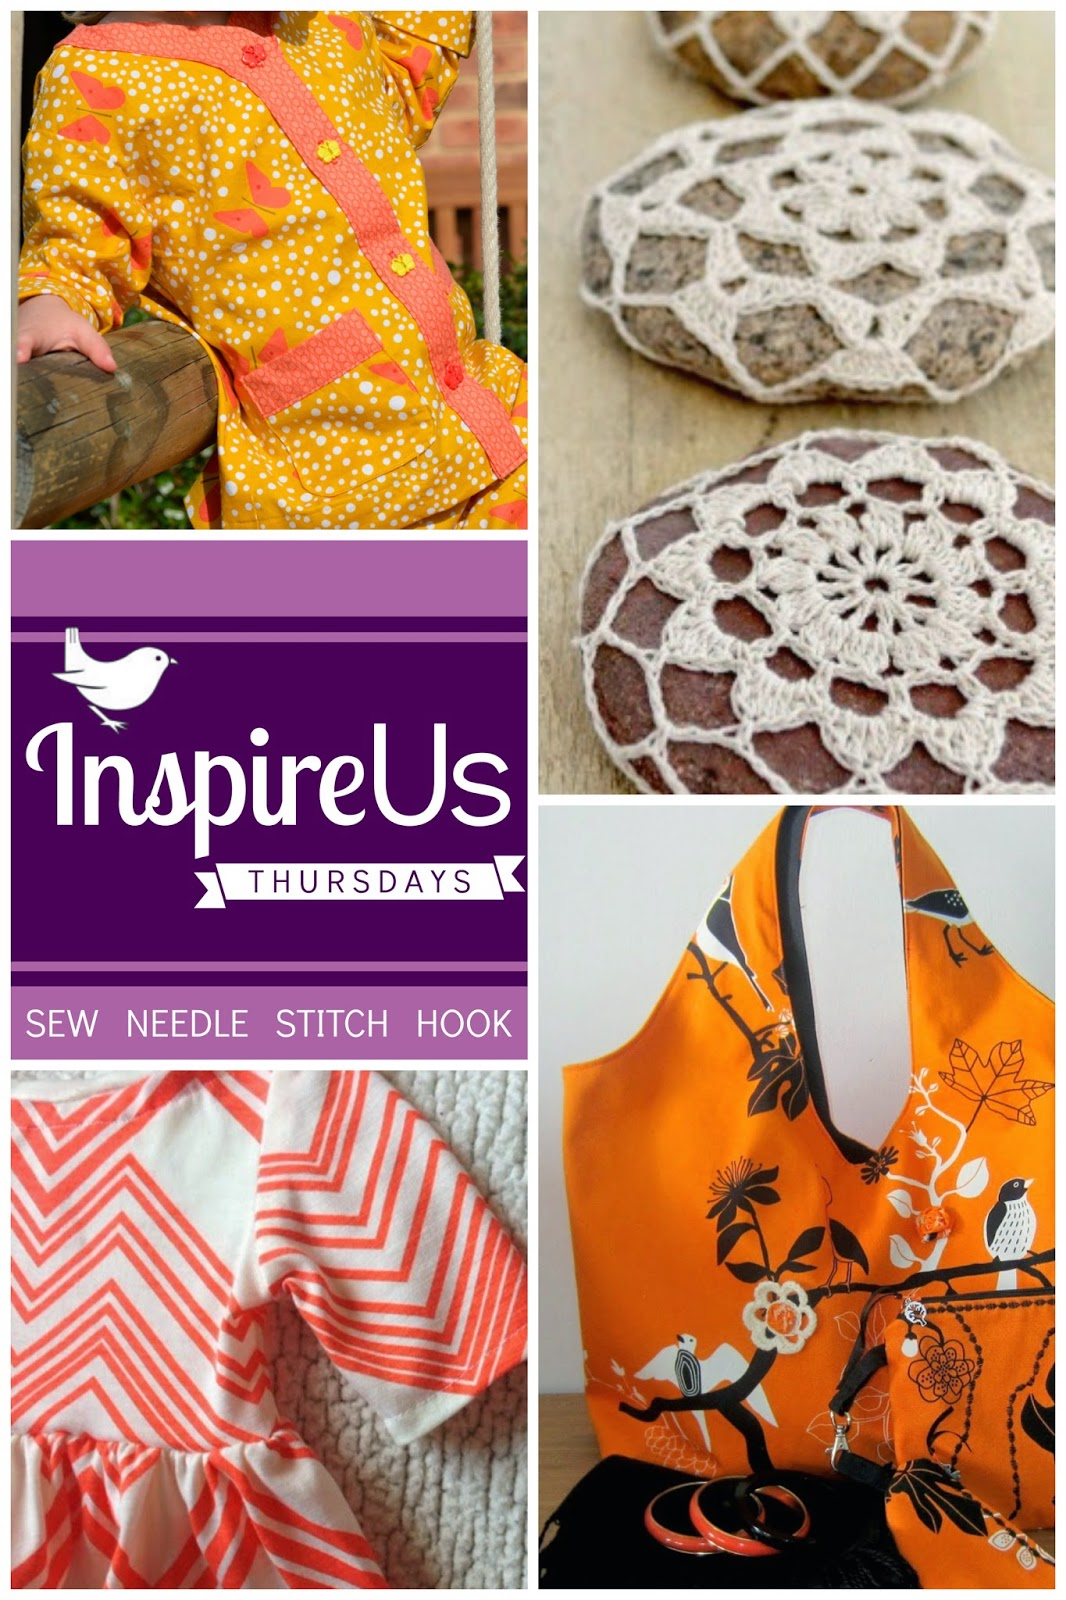 Inspire Us Thursdays: Sew Needle Stitch Hook | June 5 Features! | The Inspired Wren